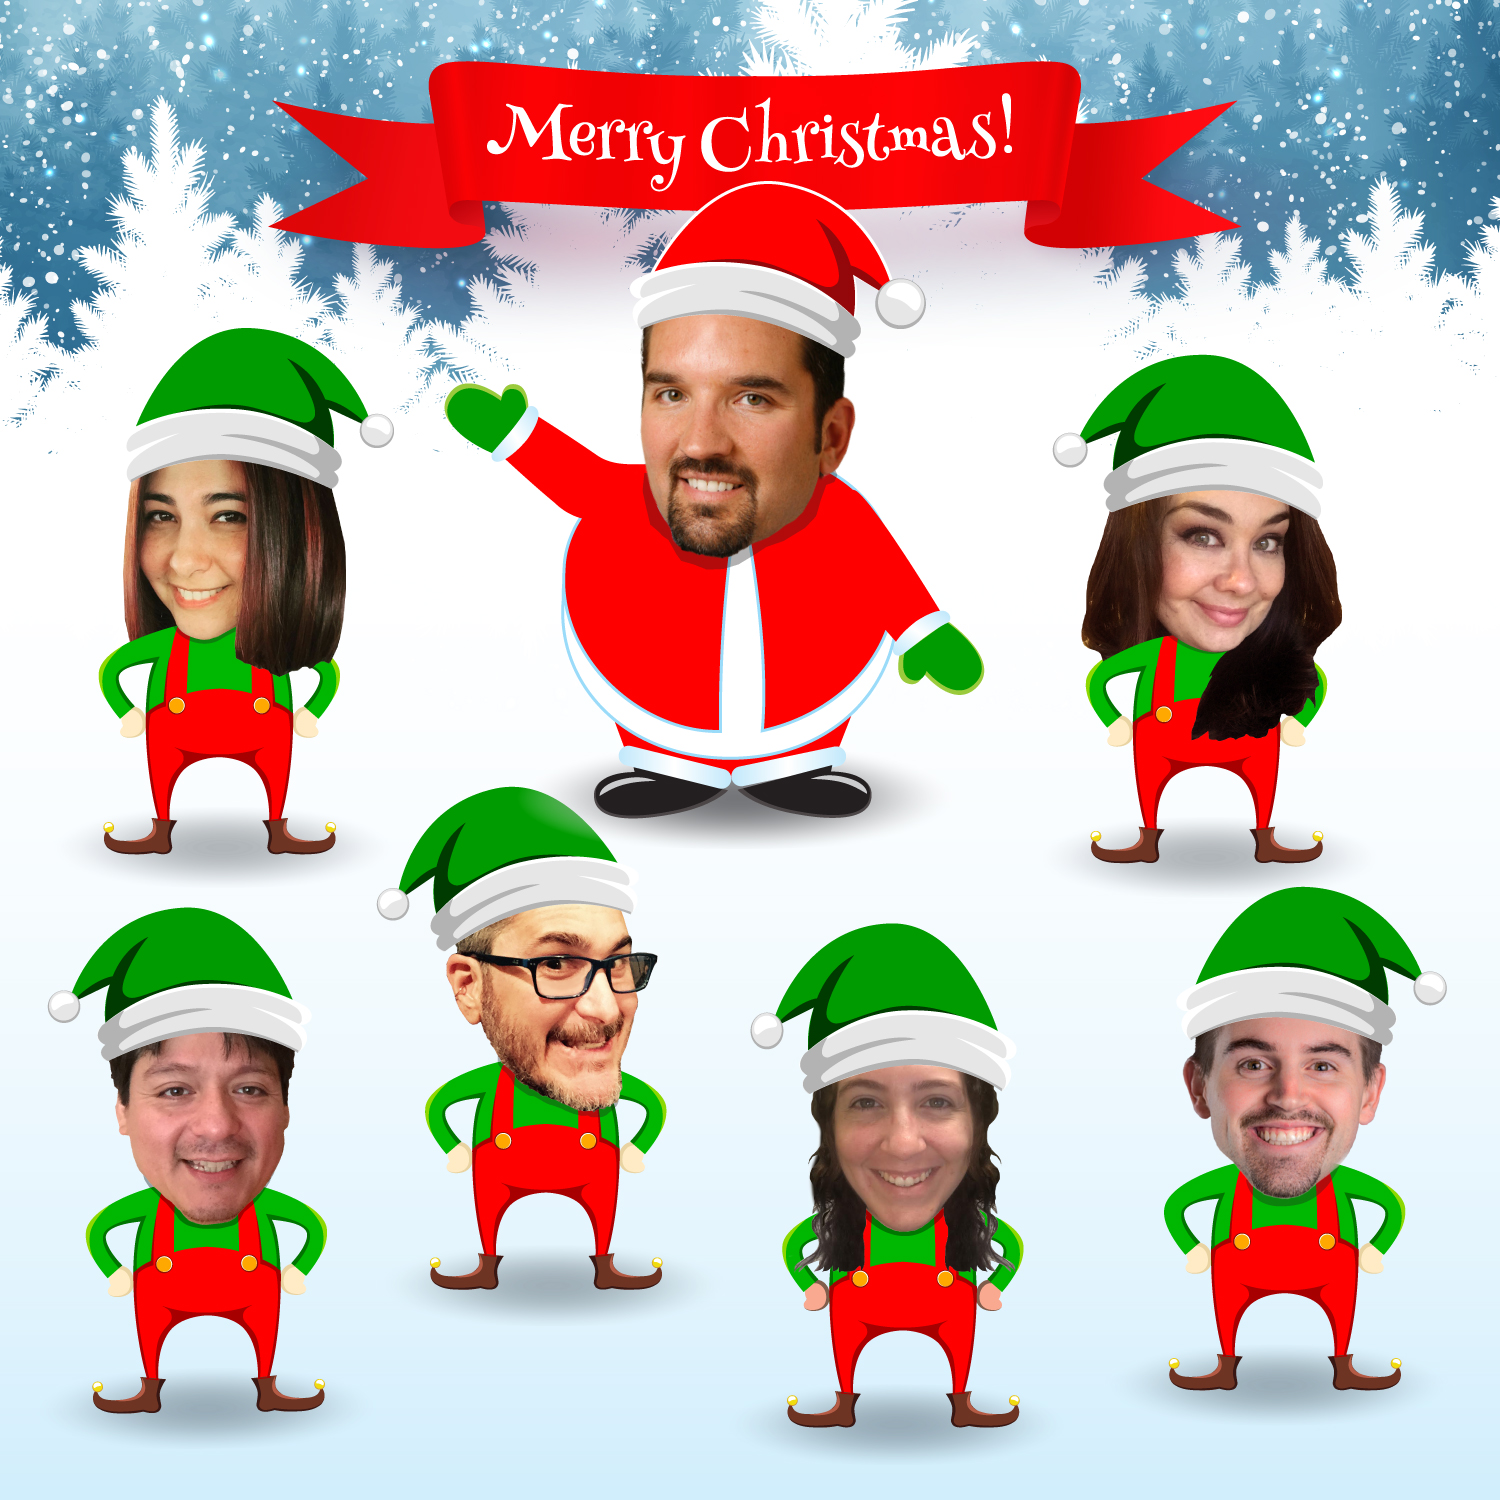 ok our graphic designer joey had a bit of fun with this one ha hope this brings a smile to your face as the team and i wish you and your - Merry Christmas Elf